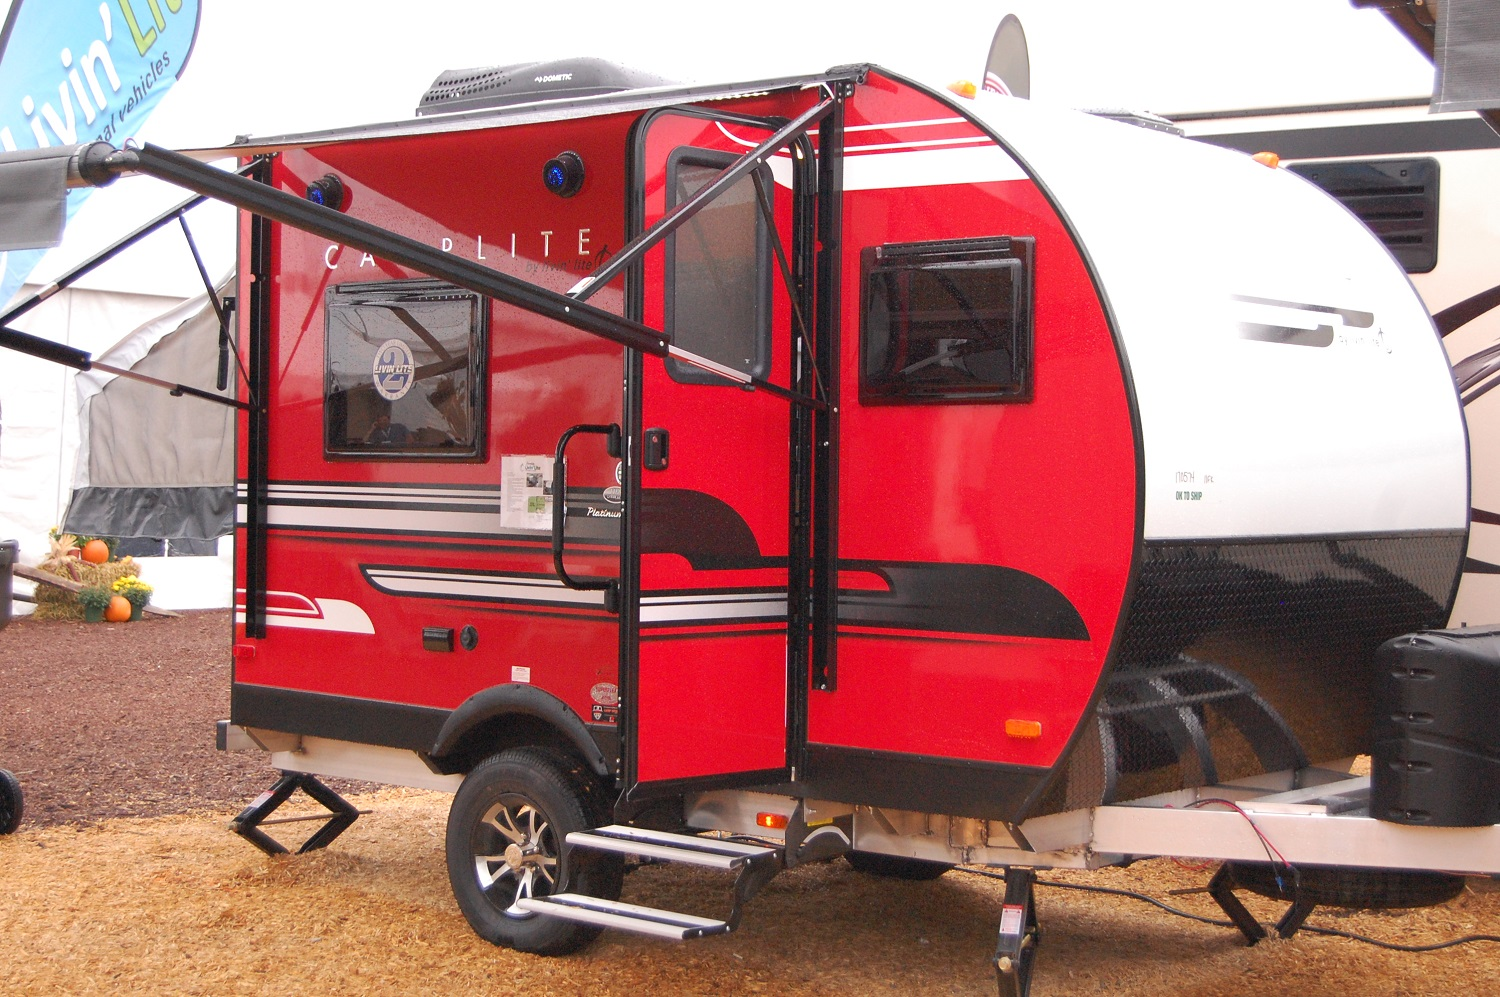 camp lite | The Small Trailer Enthusiast